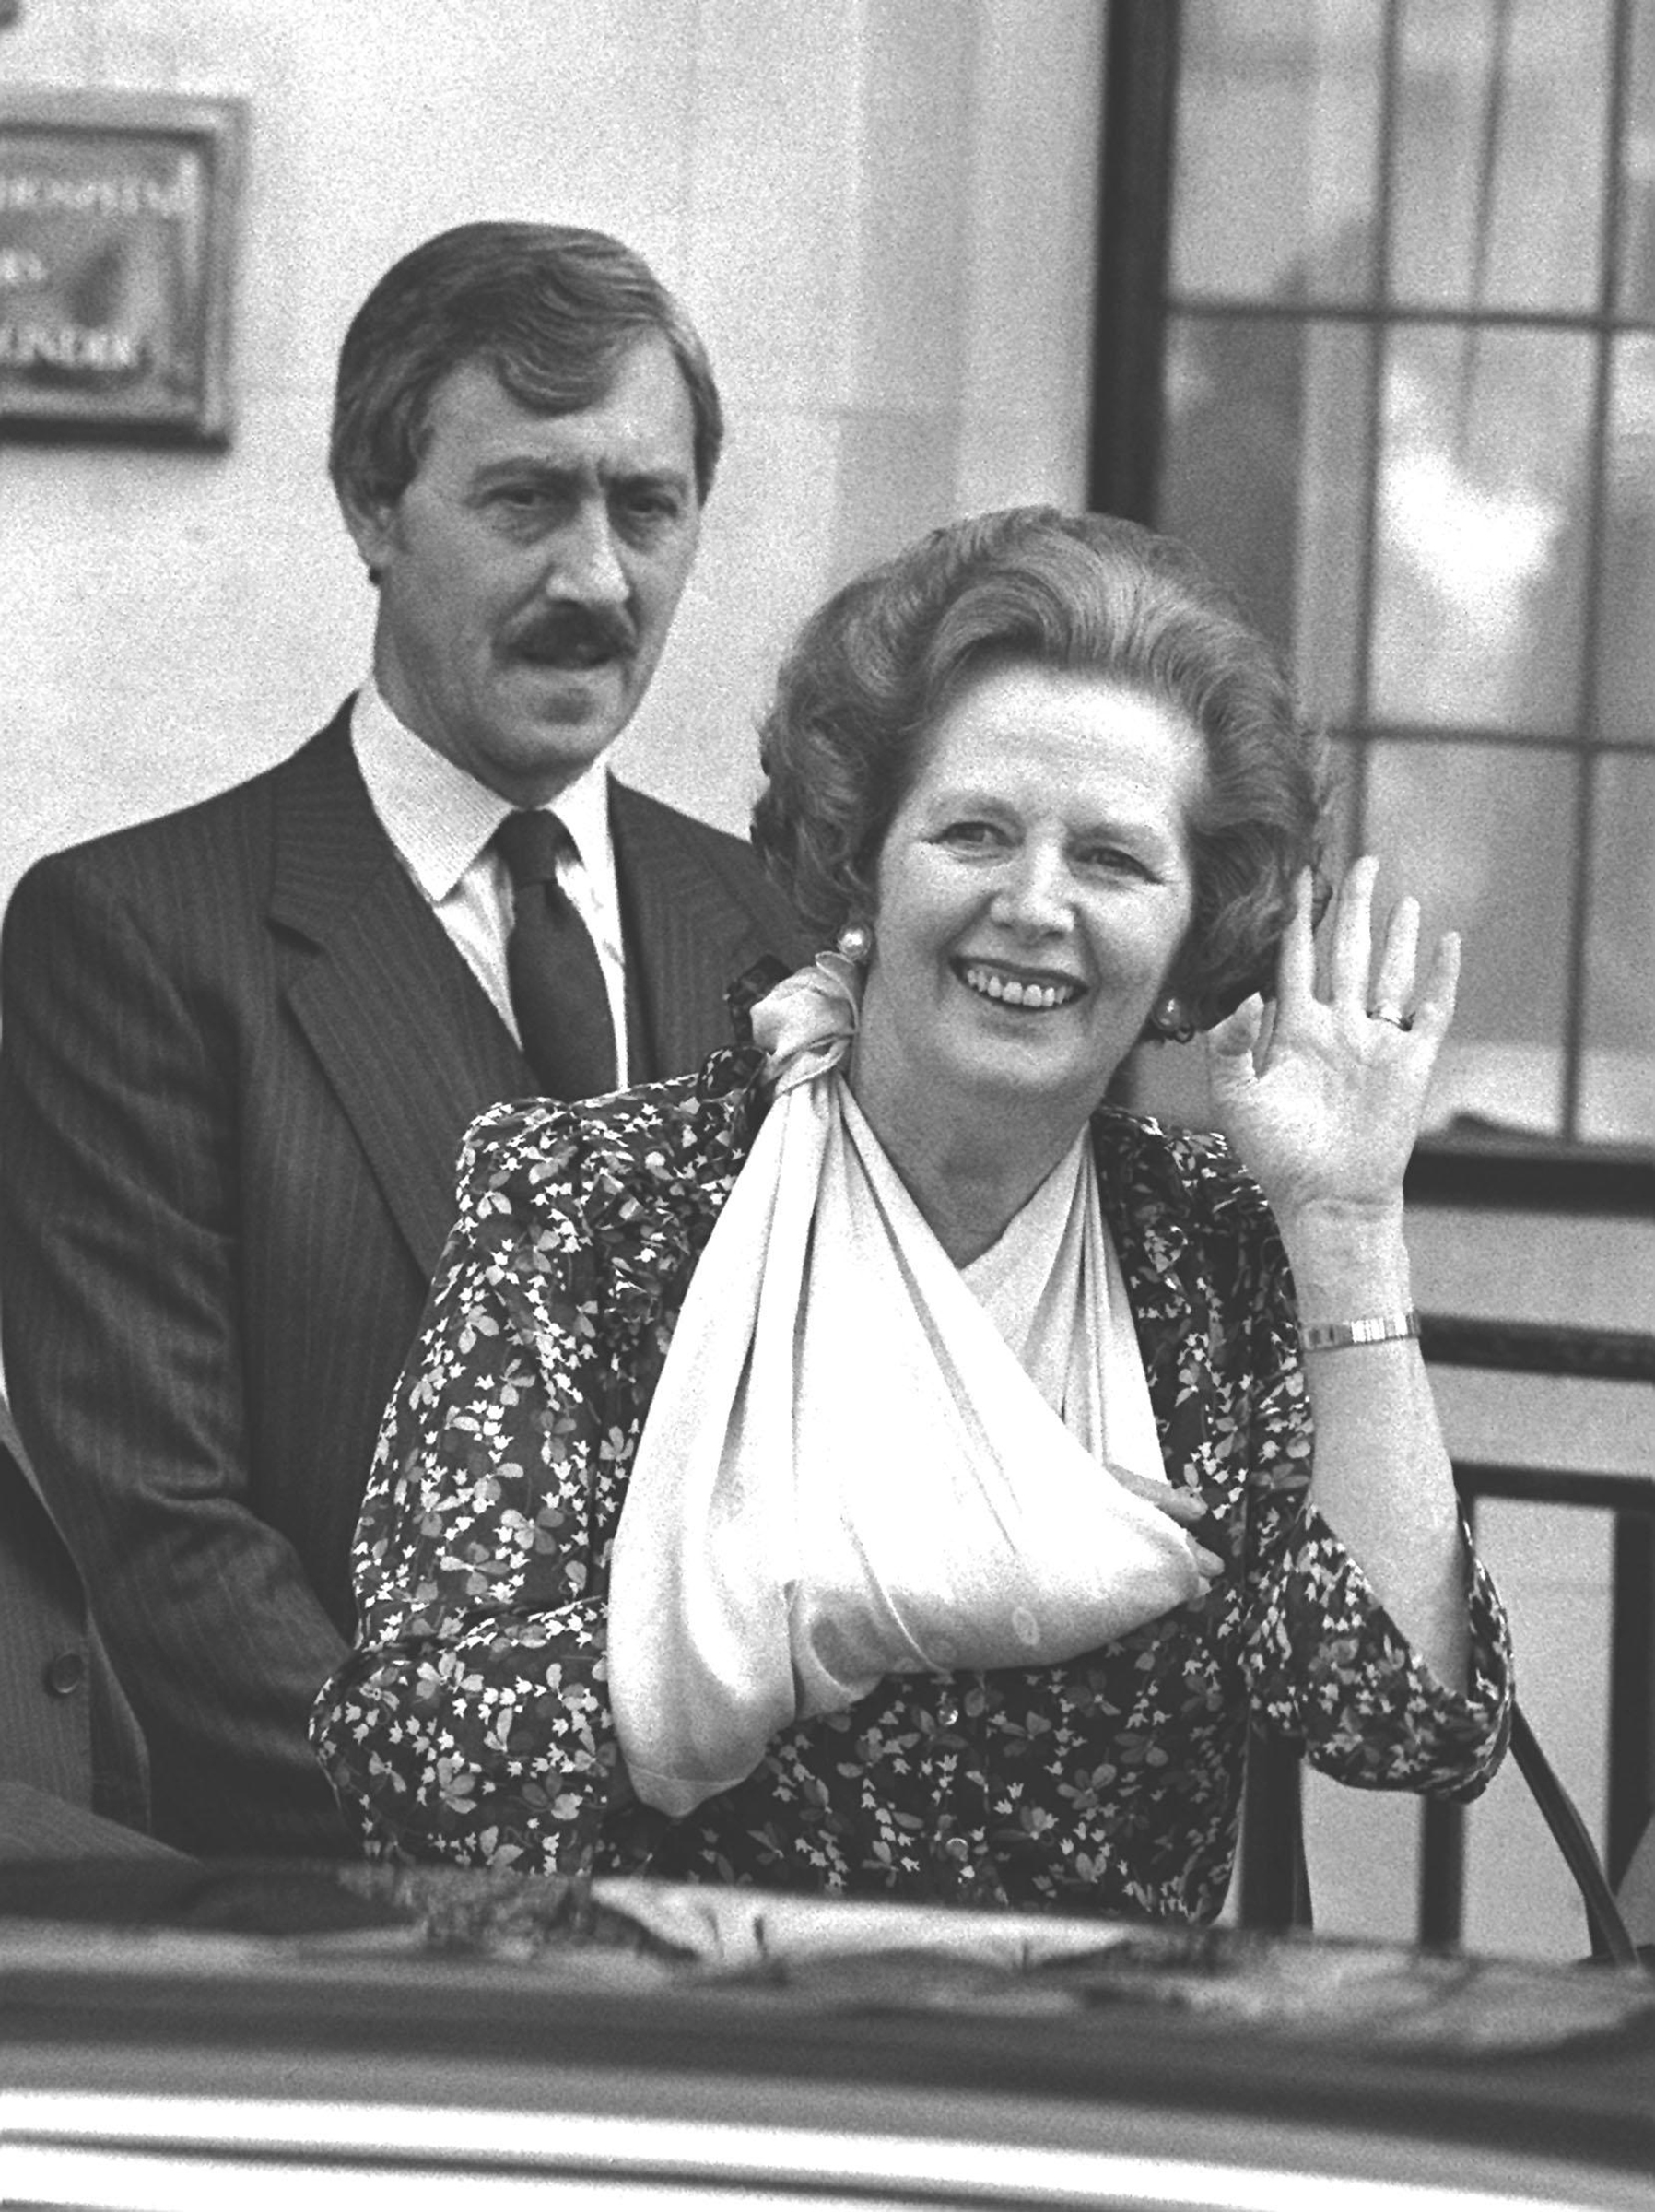 Margaret Thatcher leaving hospital after a successful operation on her right hand in 1986.